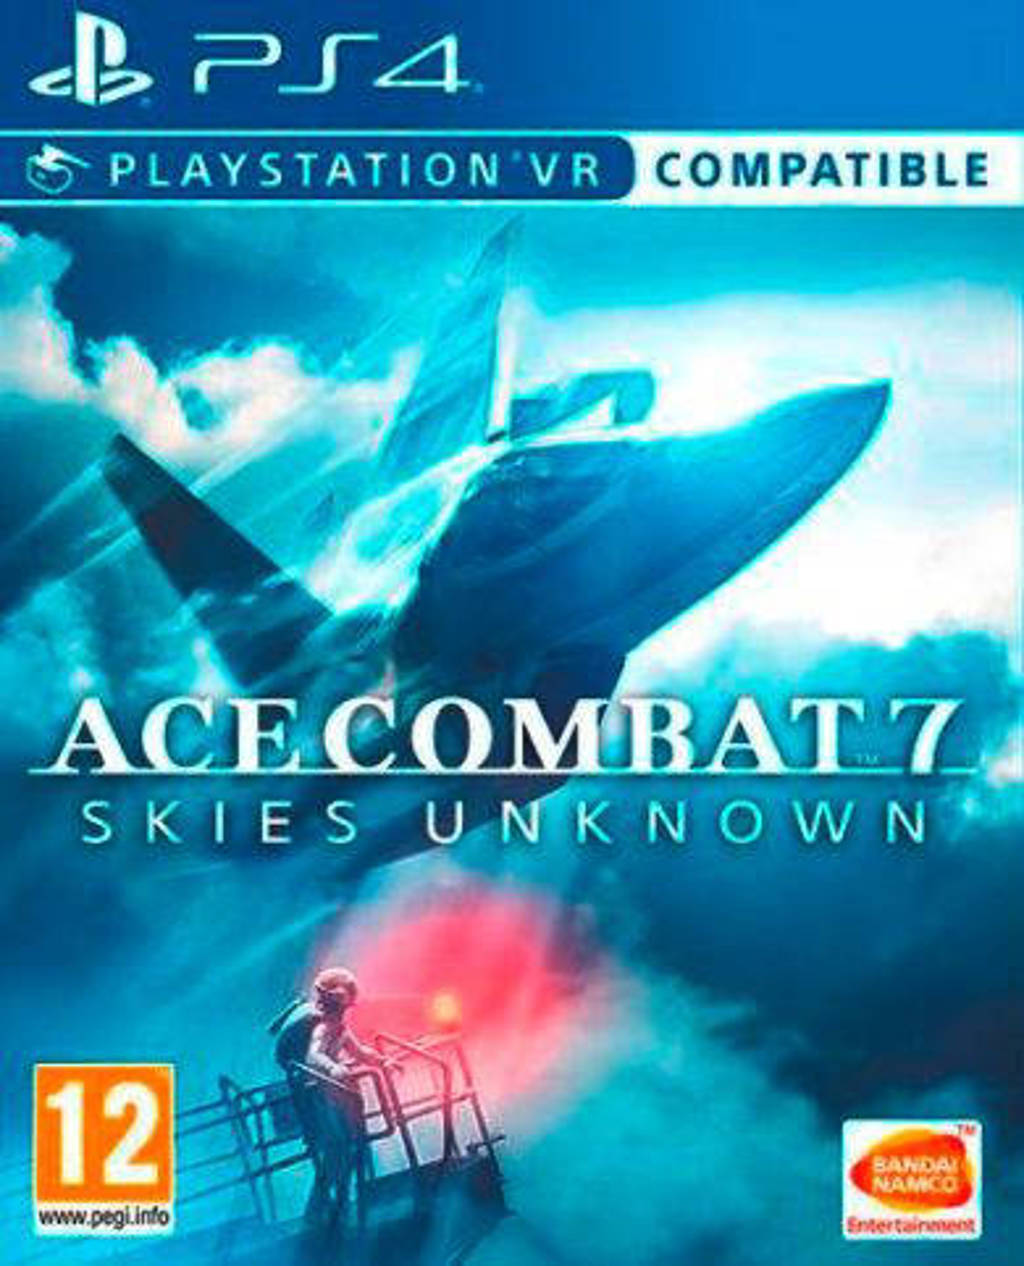 Ace combat 7 - Skies unkown (PlayStation 4)